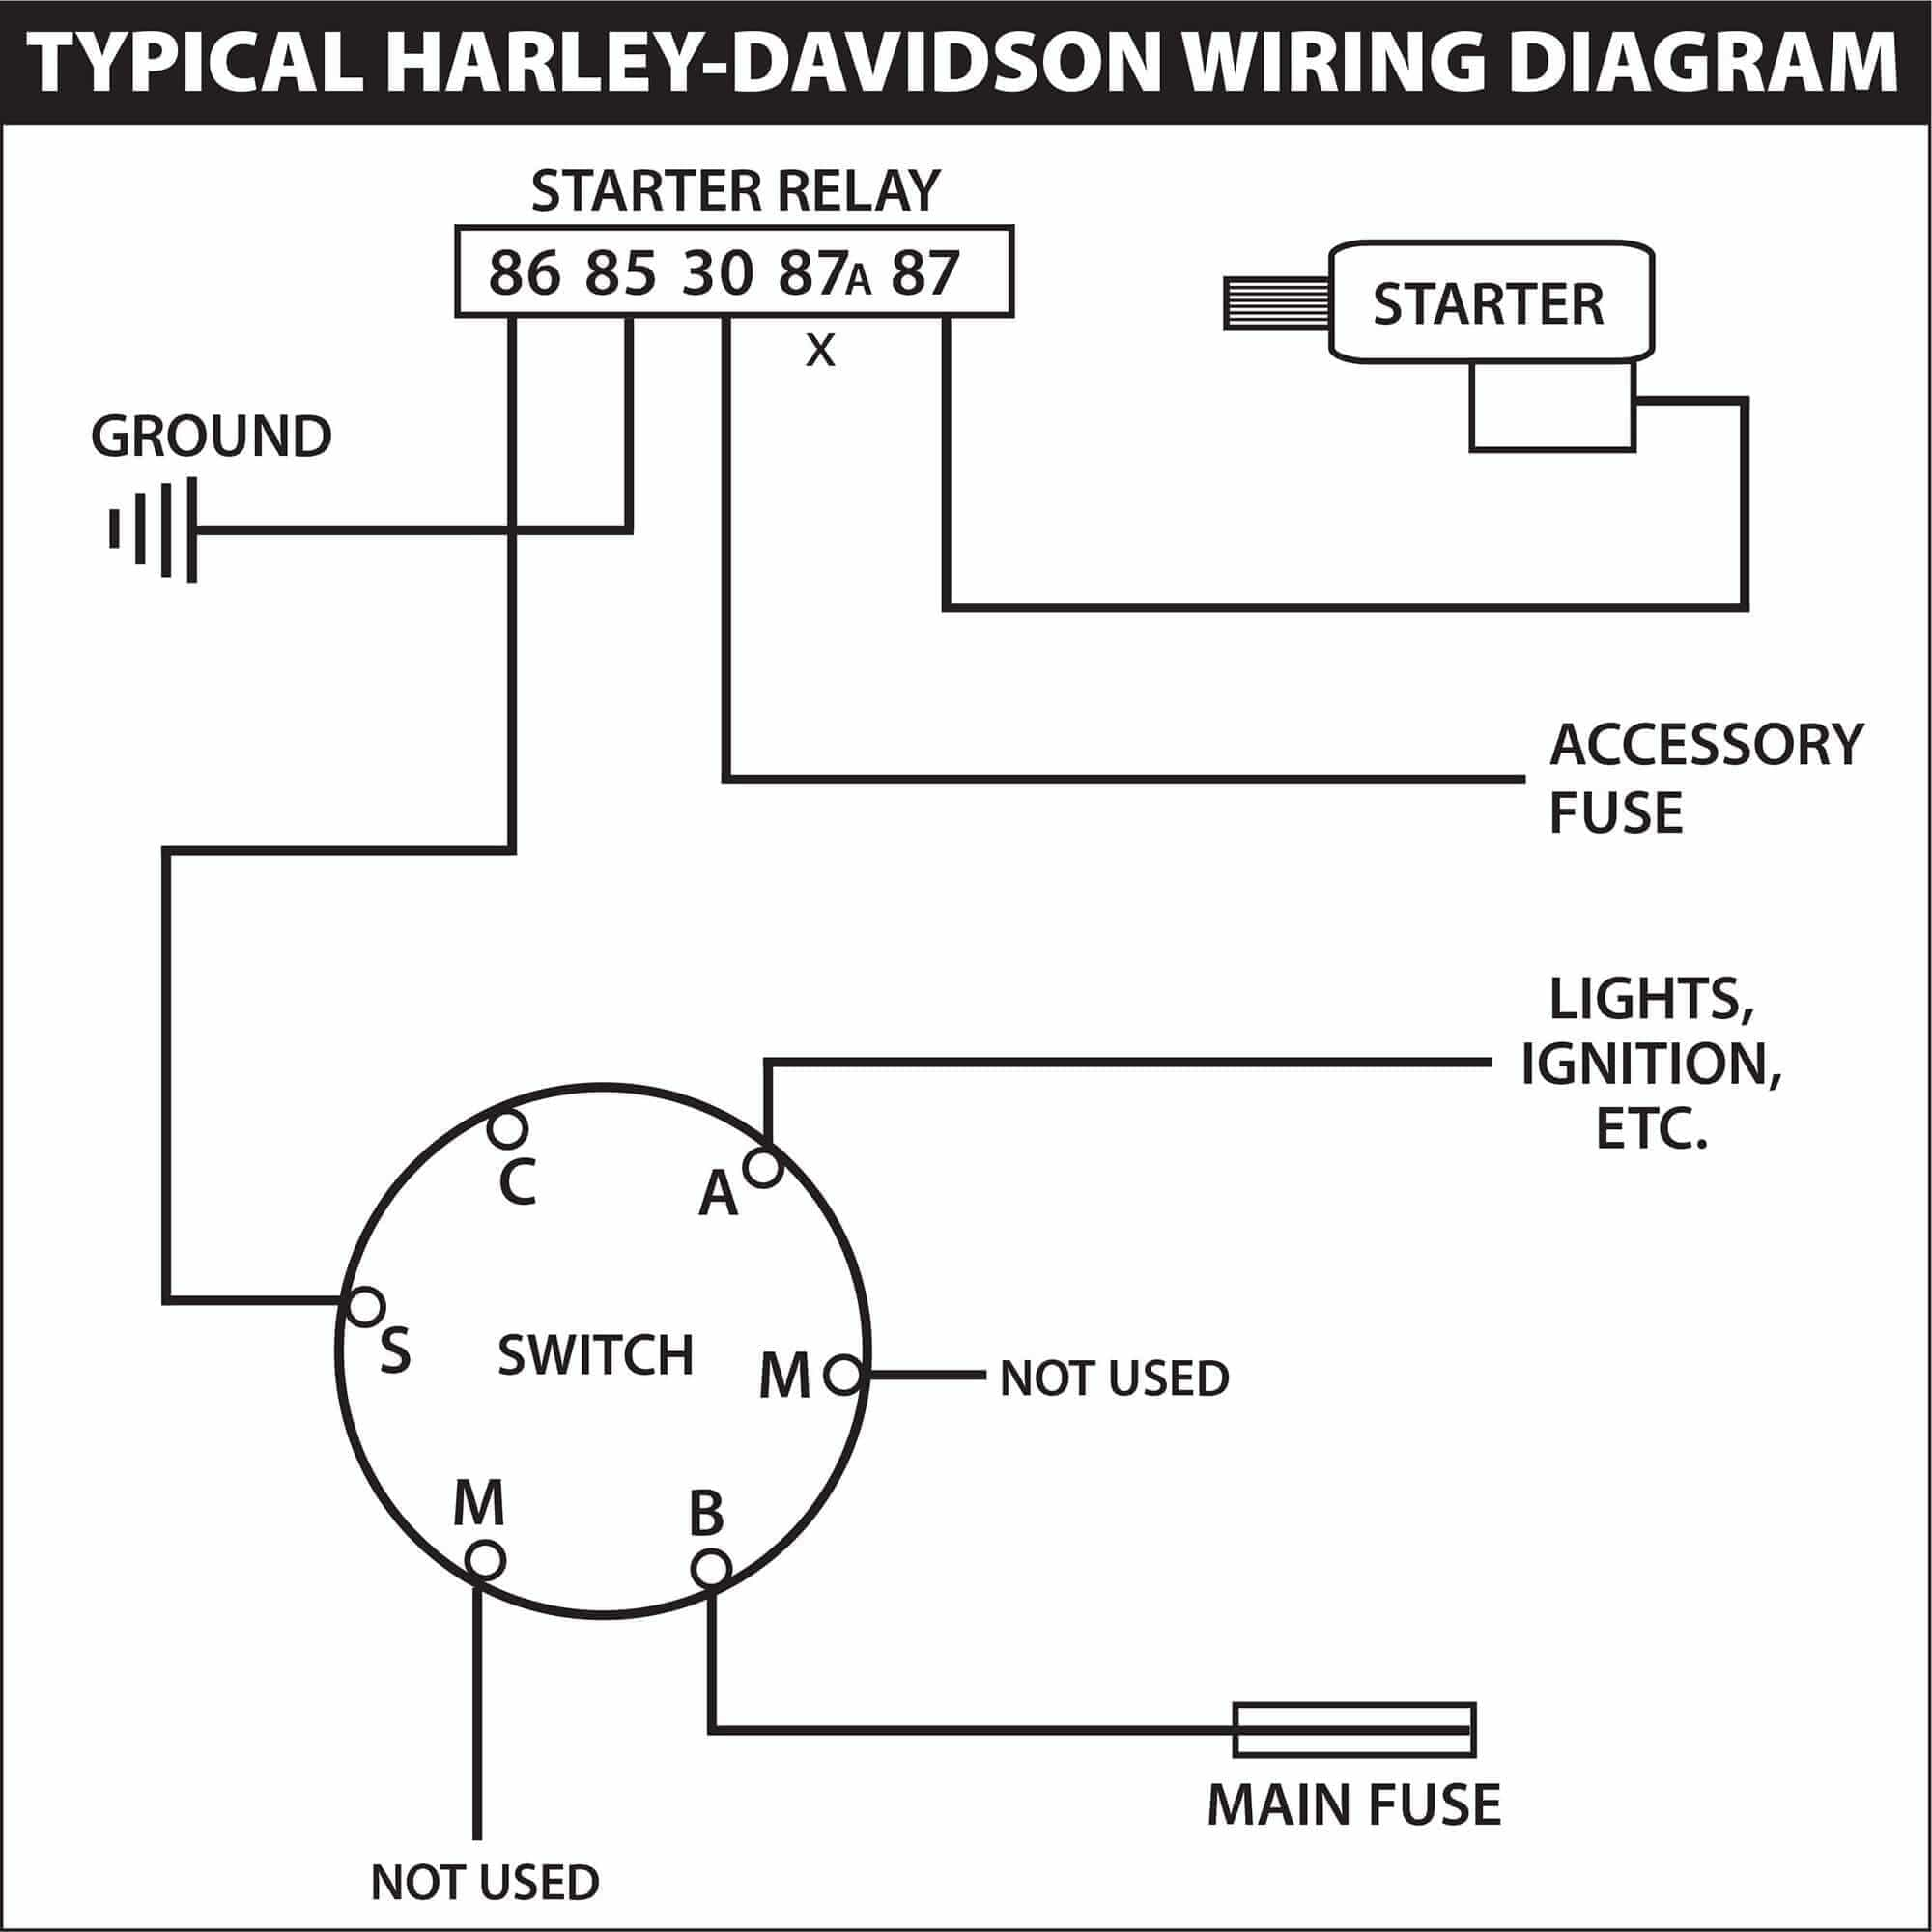 Harley Dyna Ignition Switch Wiring Diagram 2003 Ski Doo Wiring Schematic Srd04actuator Sampwire Jeanjaures37 Fr